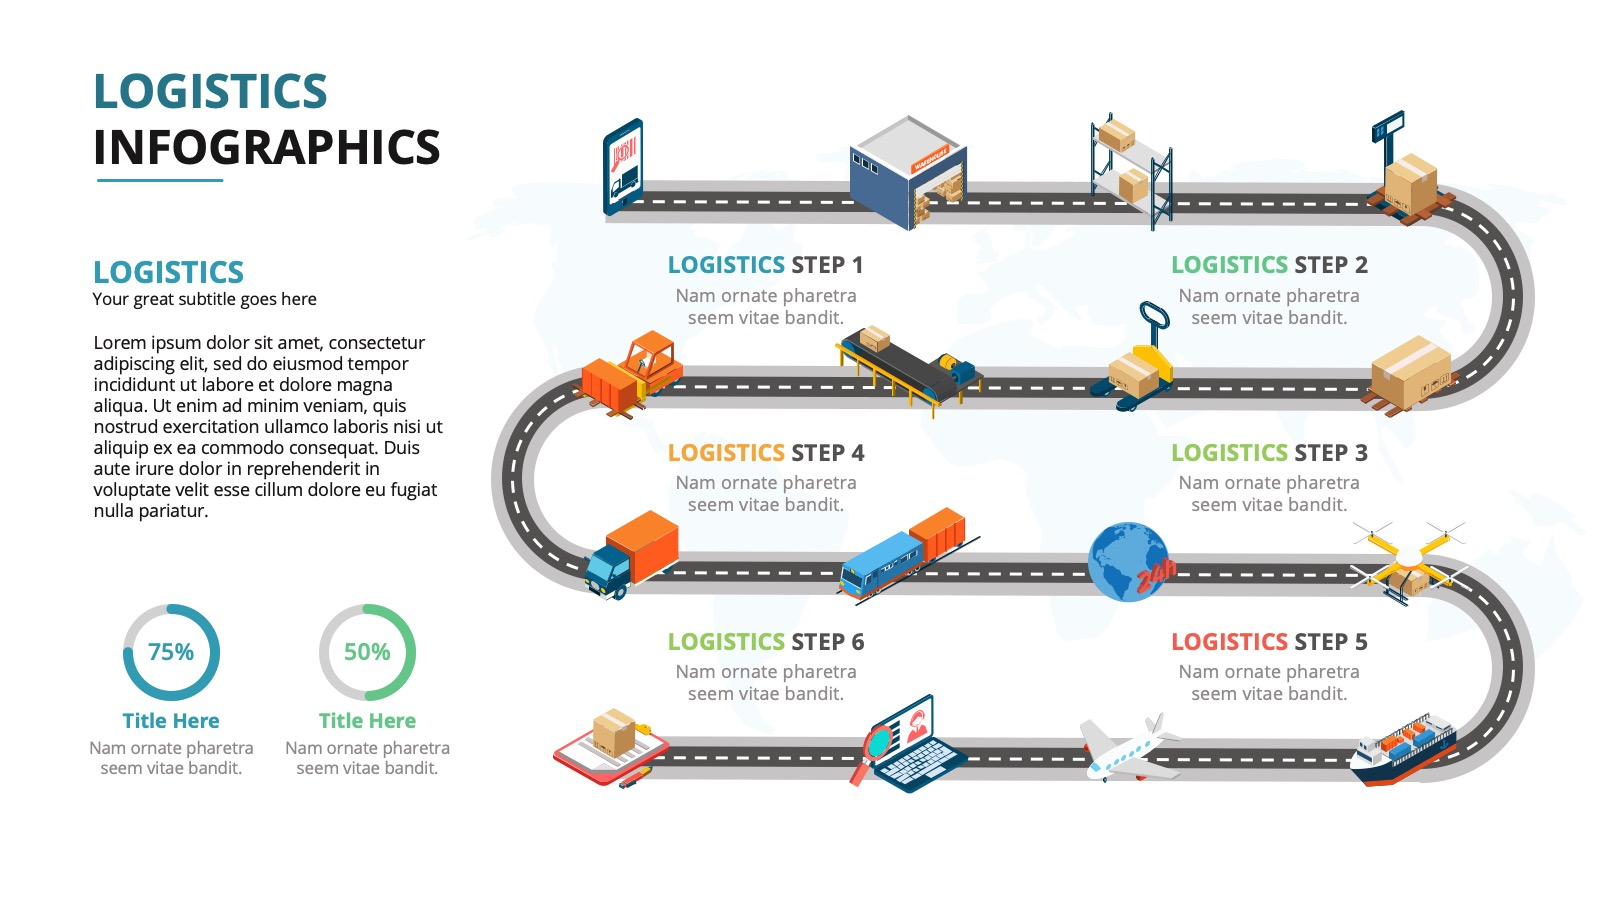 Logistic Infographic powerpoint slide